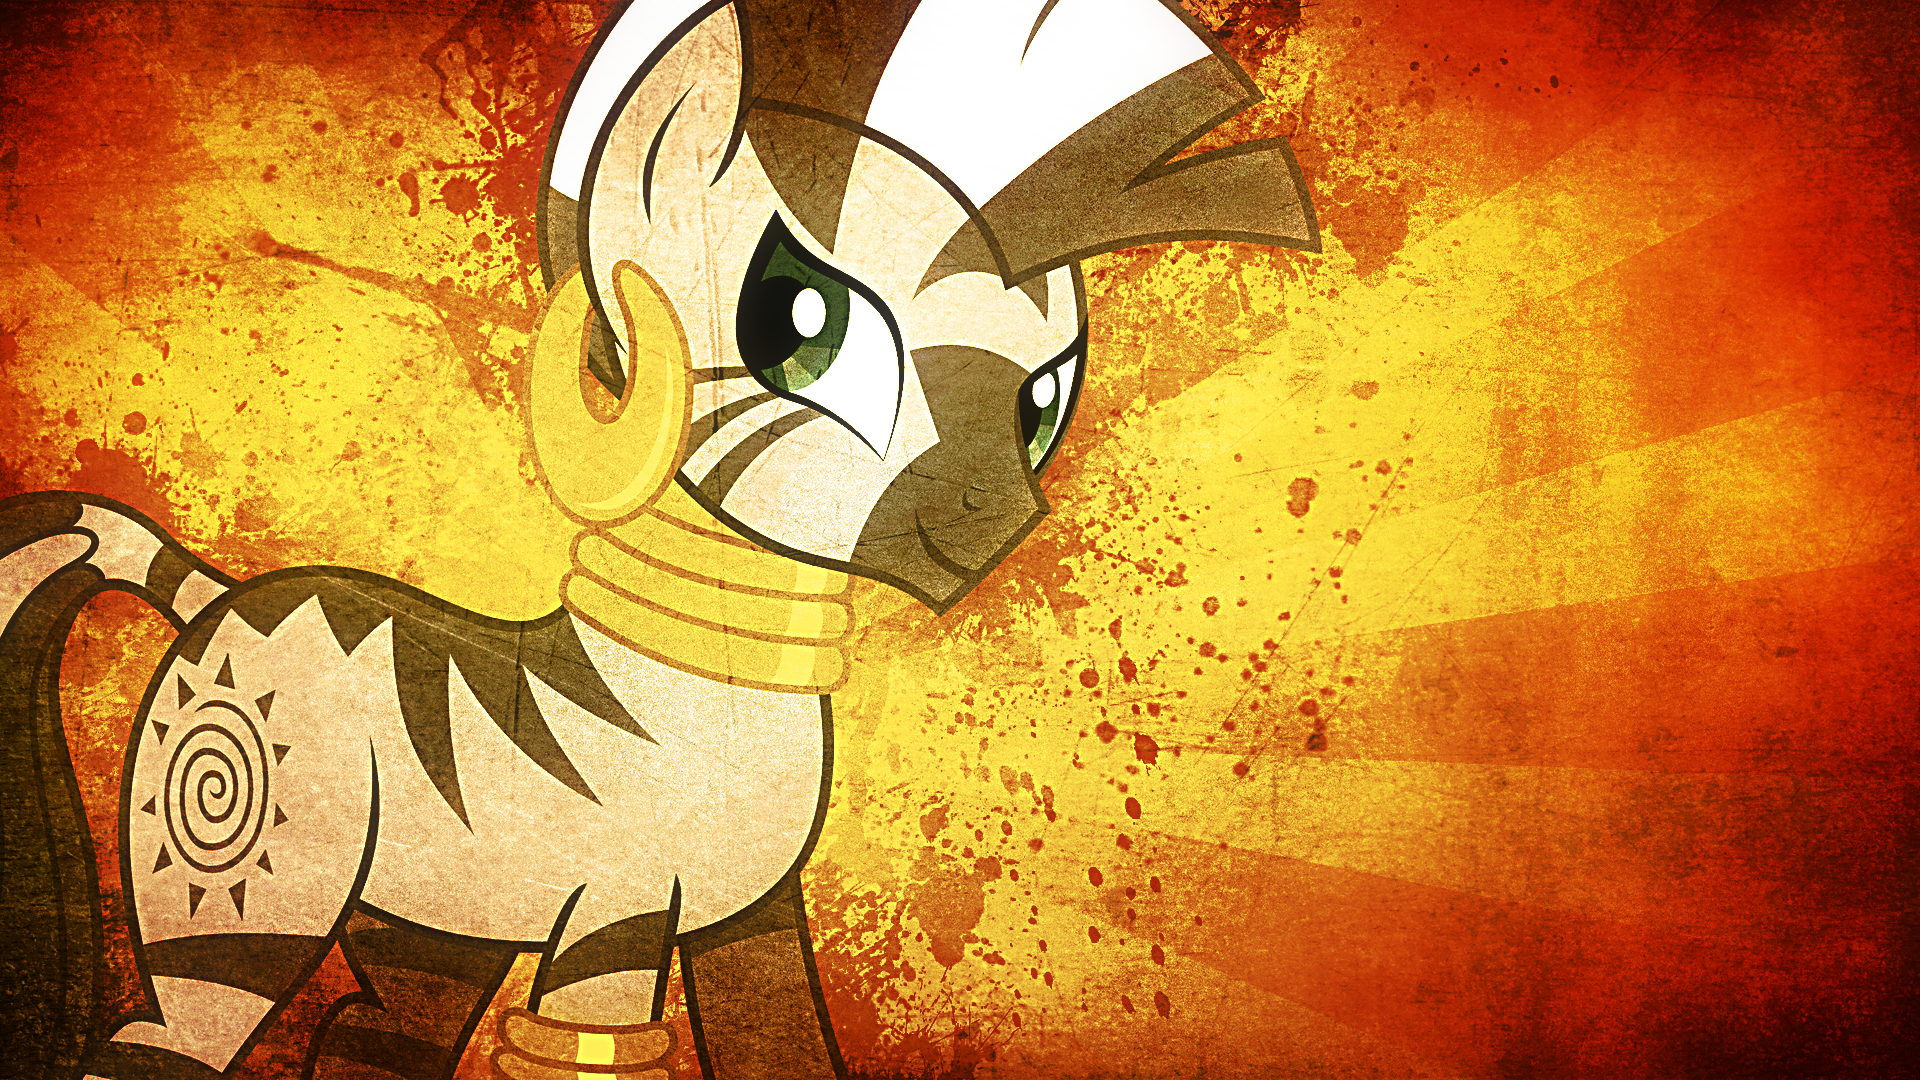 Zecora Wallpaper by Hawk9mm and Tzolkine